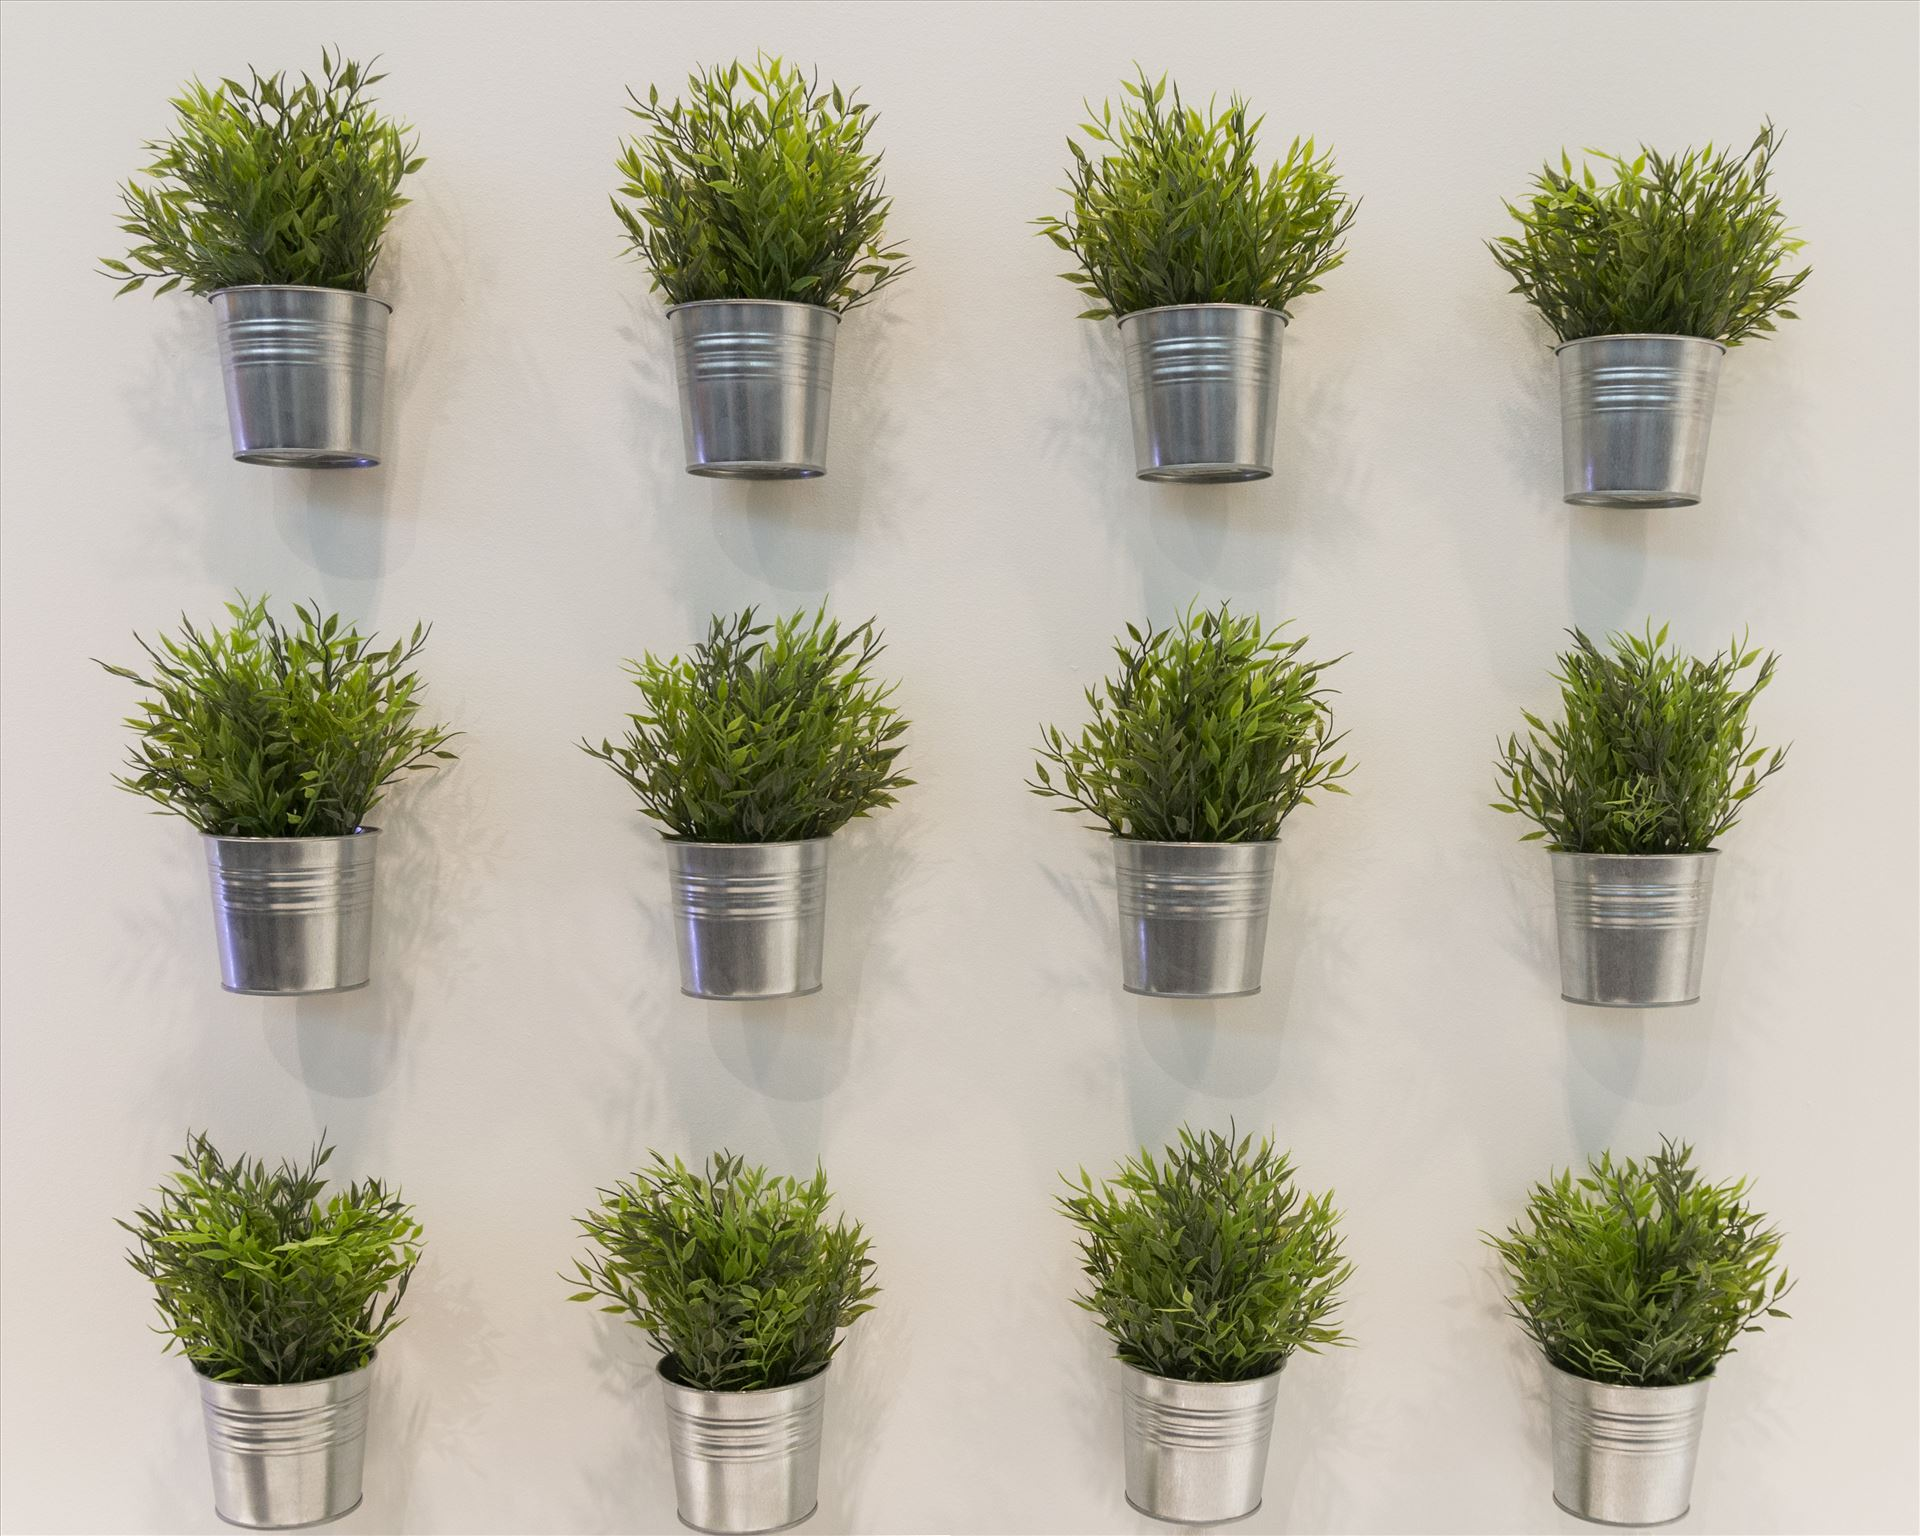 Green Green plants on wall in vertical lines by Pucko